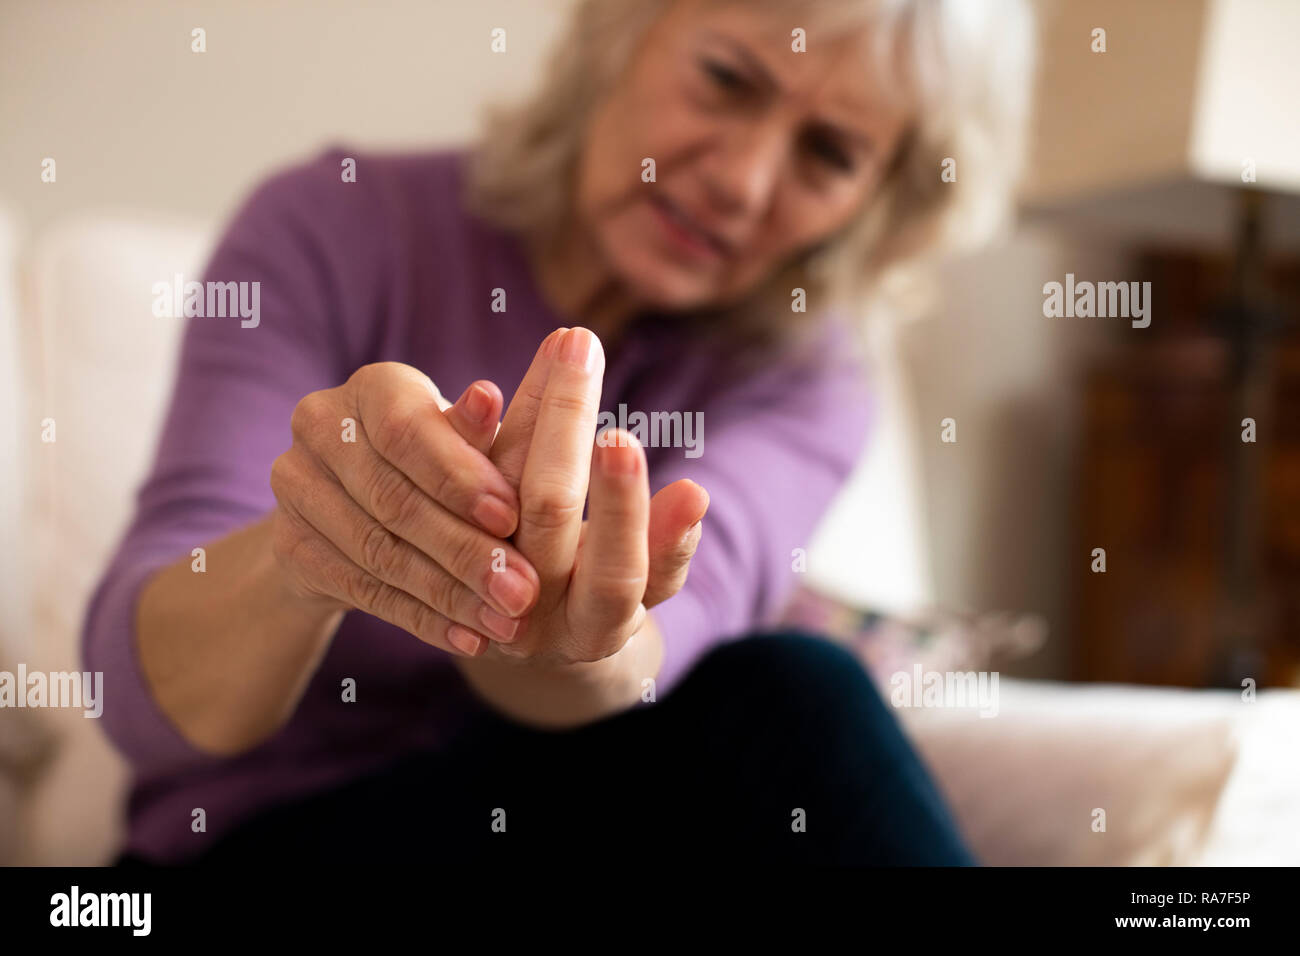 Senior Woman At Home Suffering With Arthritis - Stock Image